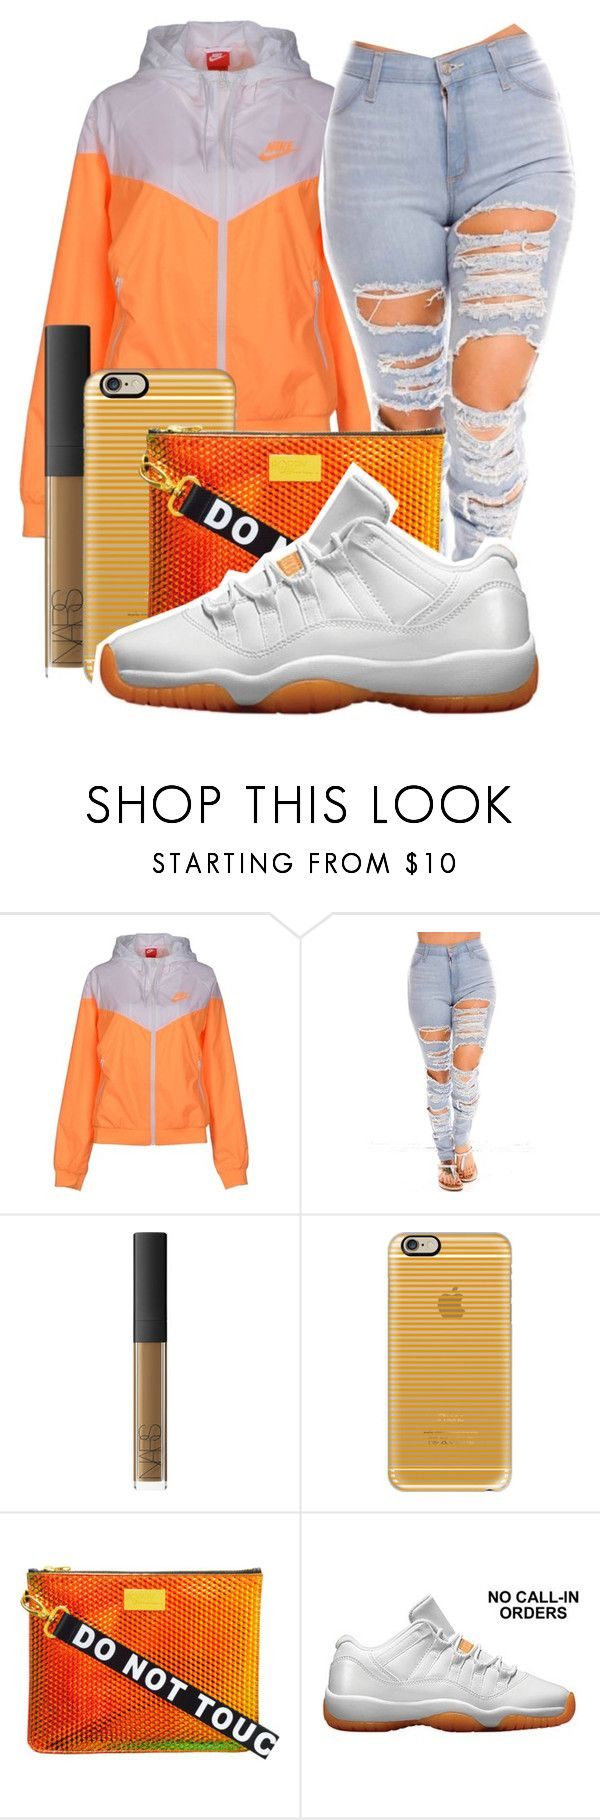 """Untitled #395"" by kenziesg ❤ liked on Polyvore featuring NIKE, NARS Cosmetics, Casetify, women's clothing, women's fashion, women, female, woman, misses and juniors"